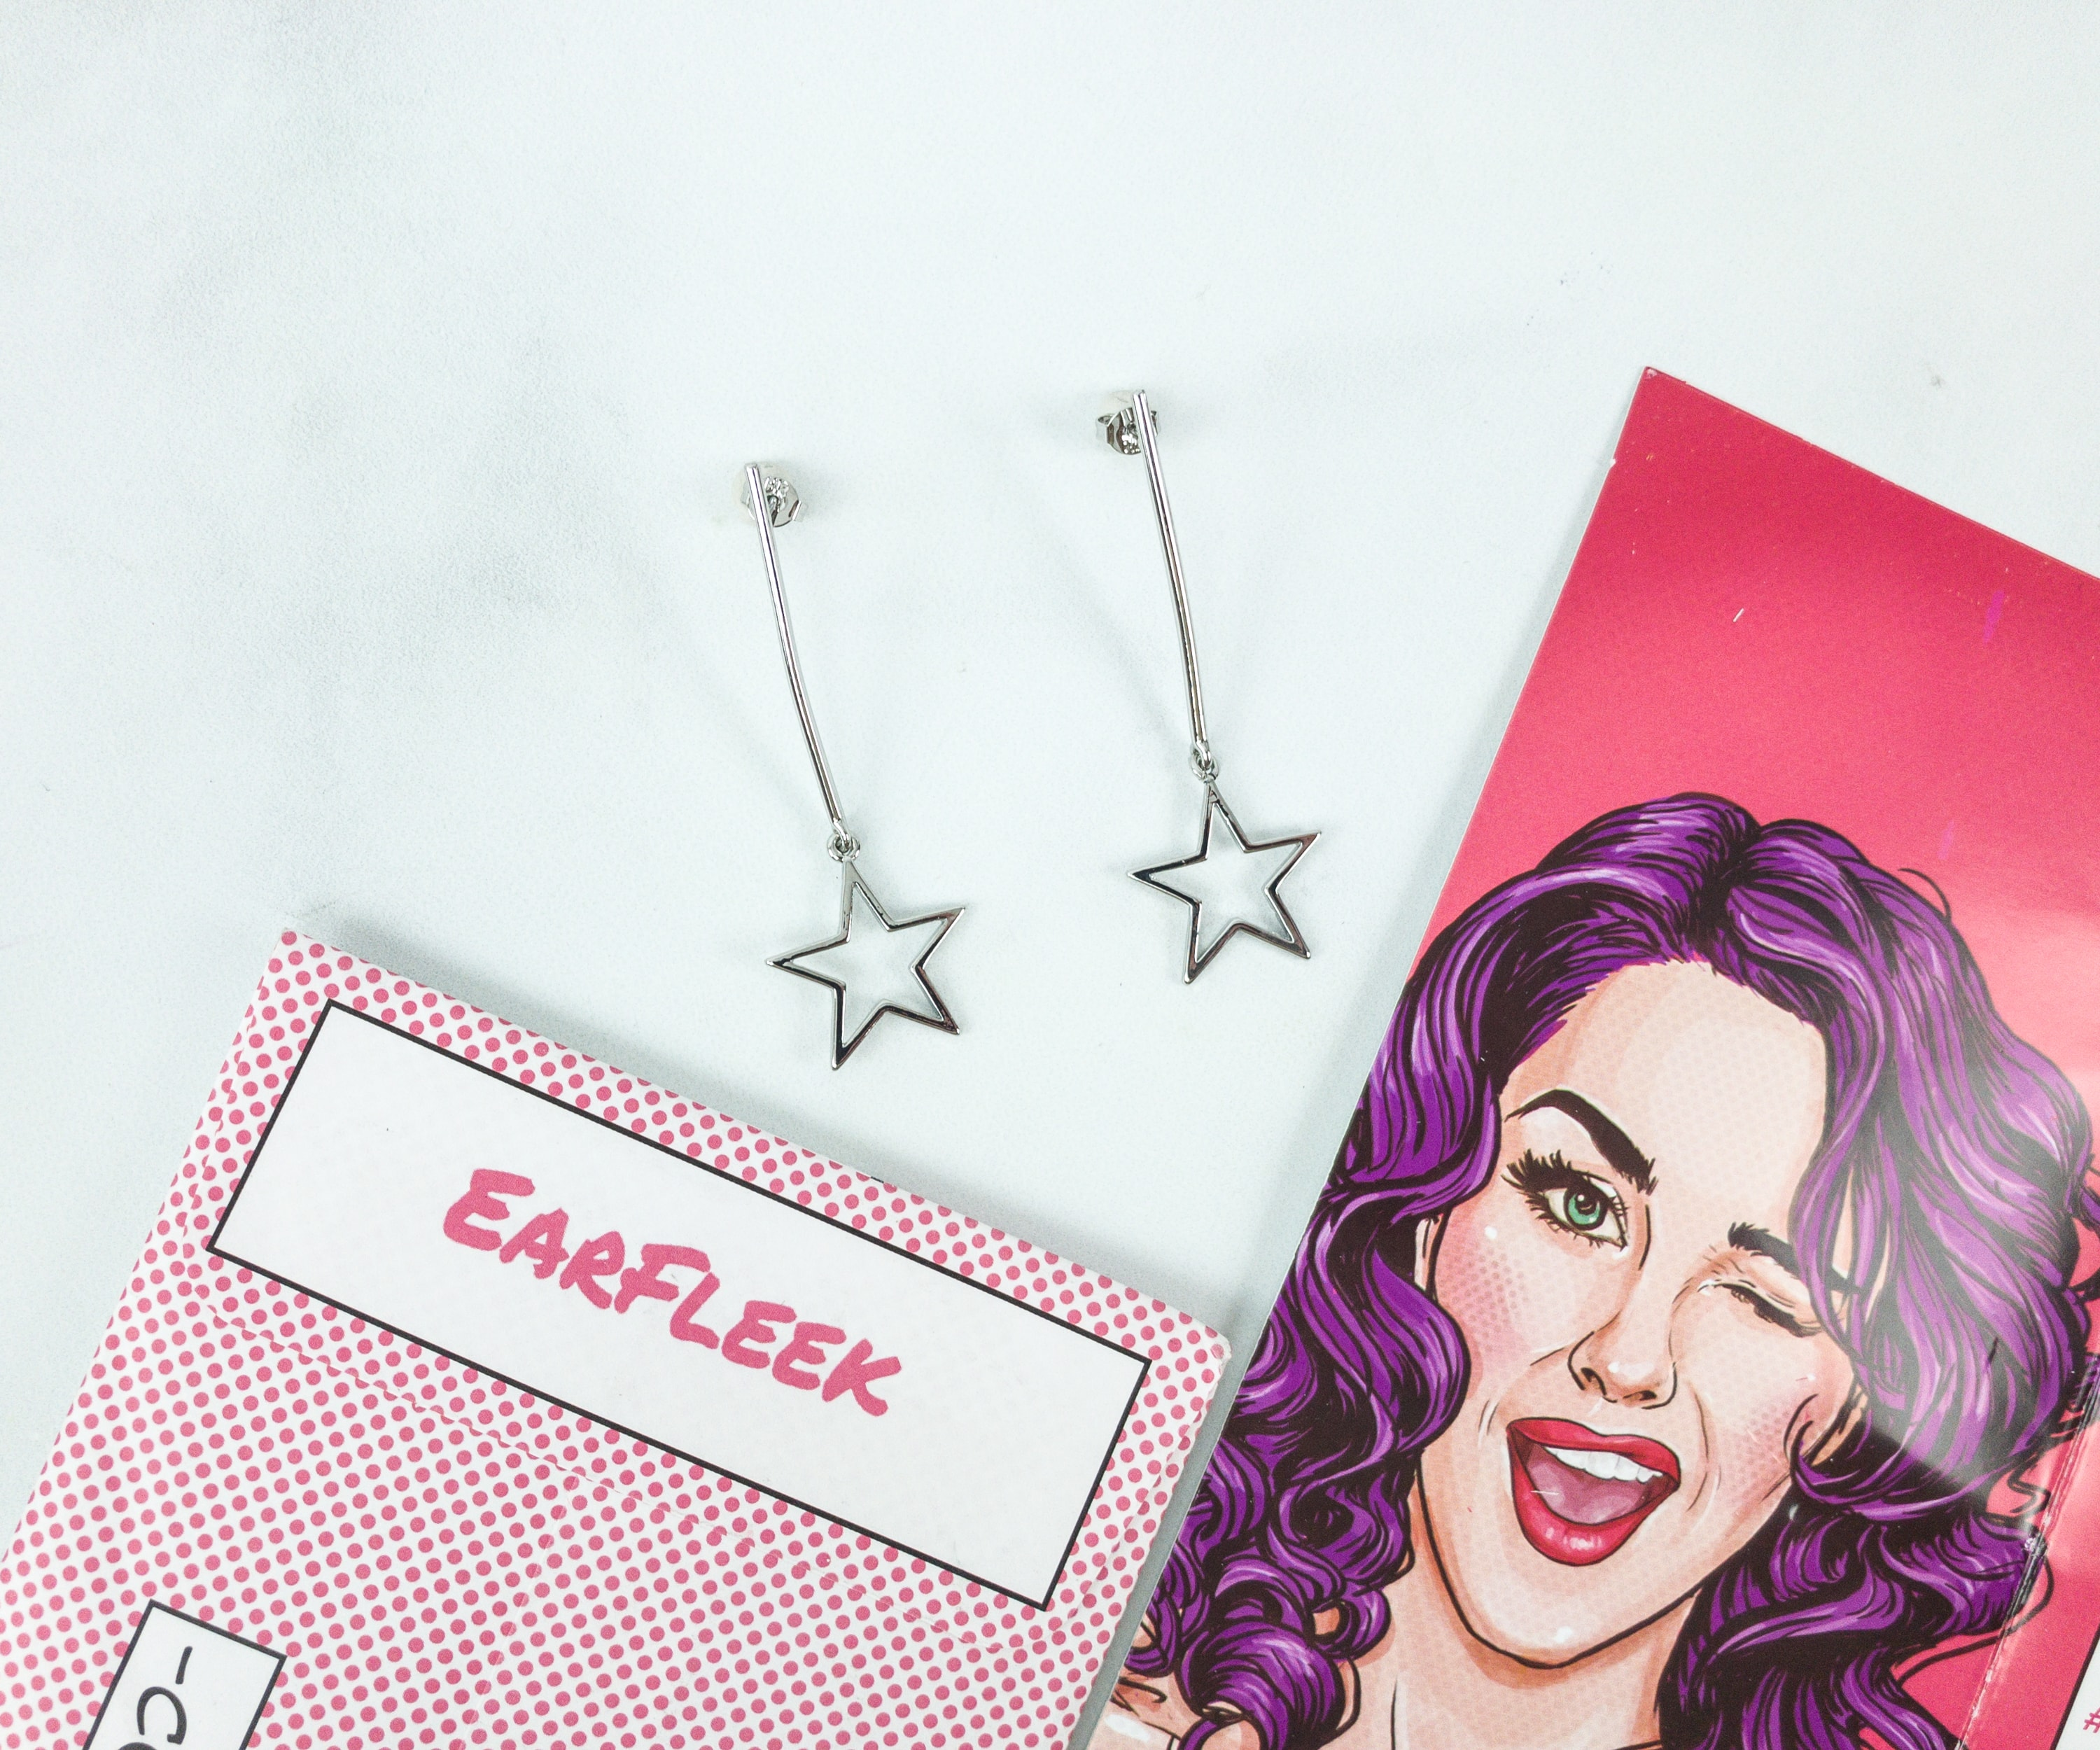 EarFleek Silly & Fun January 2019 Subscription Box Review + 50% Off Coupon